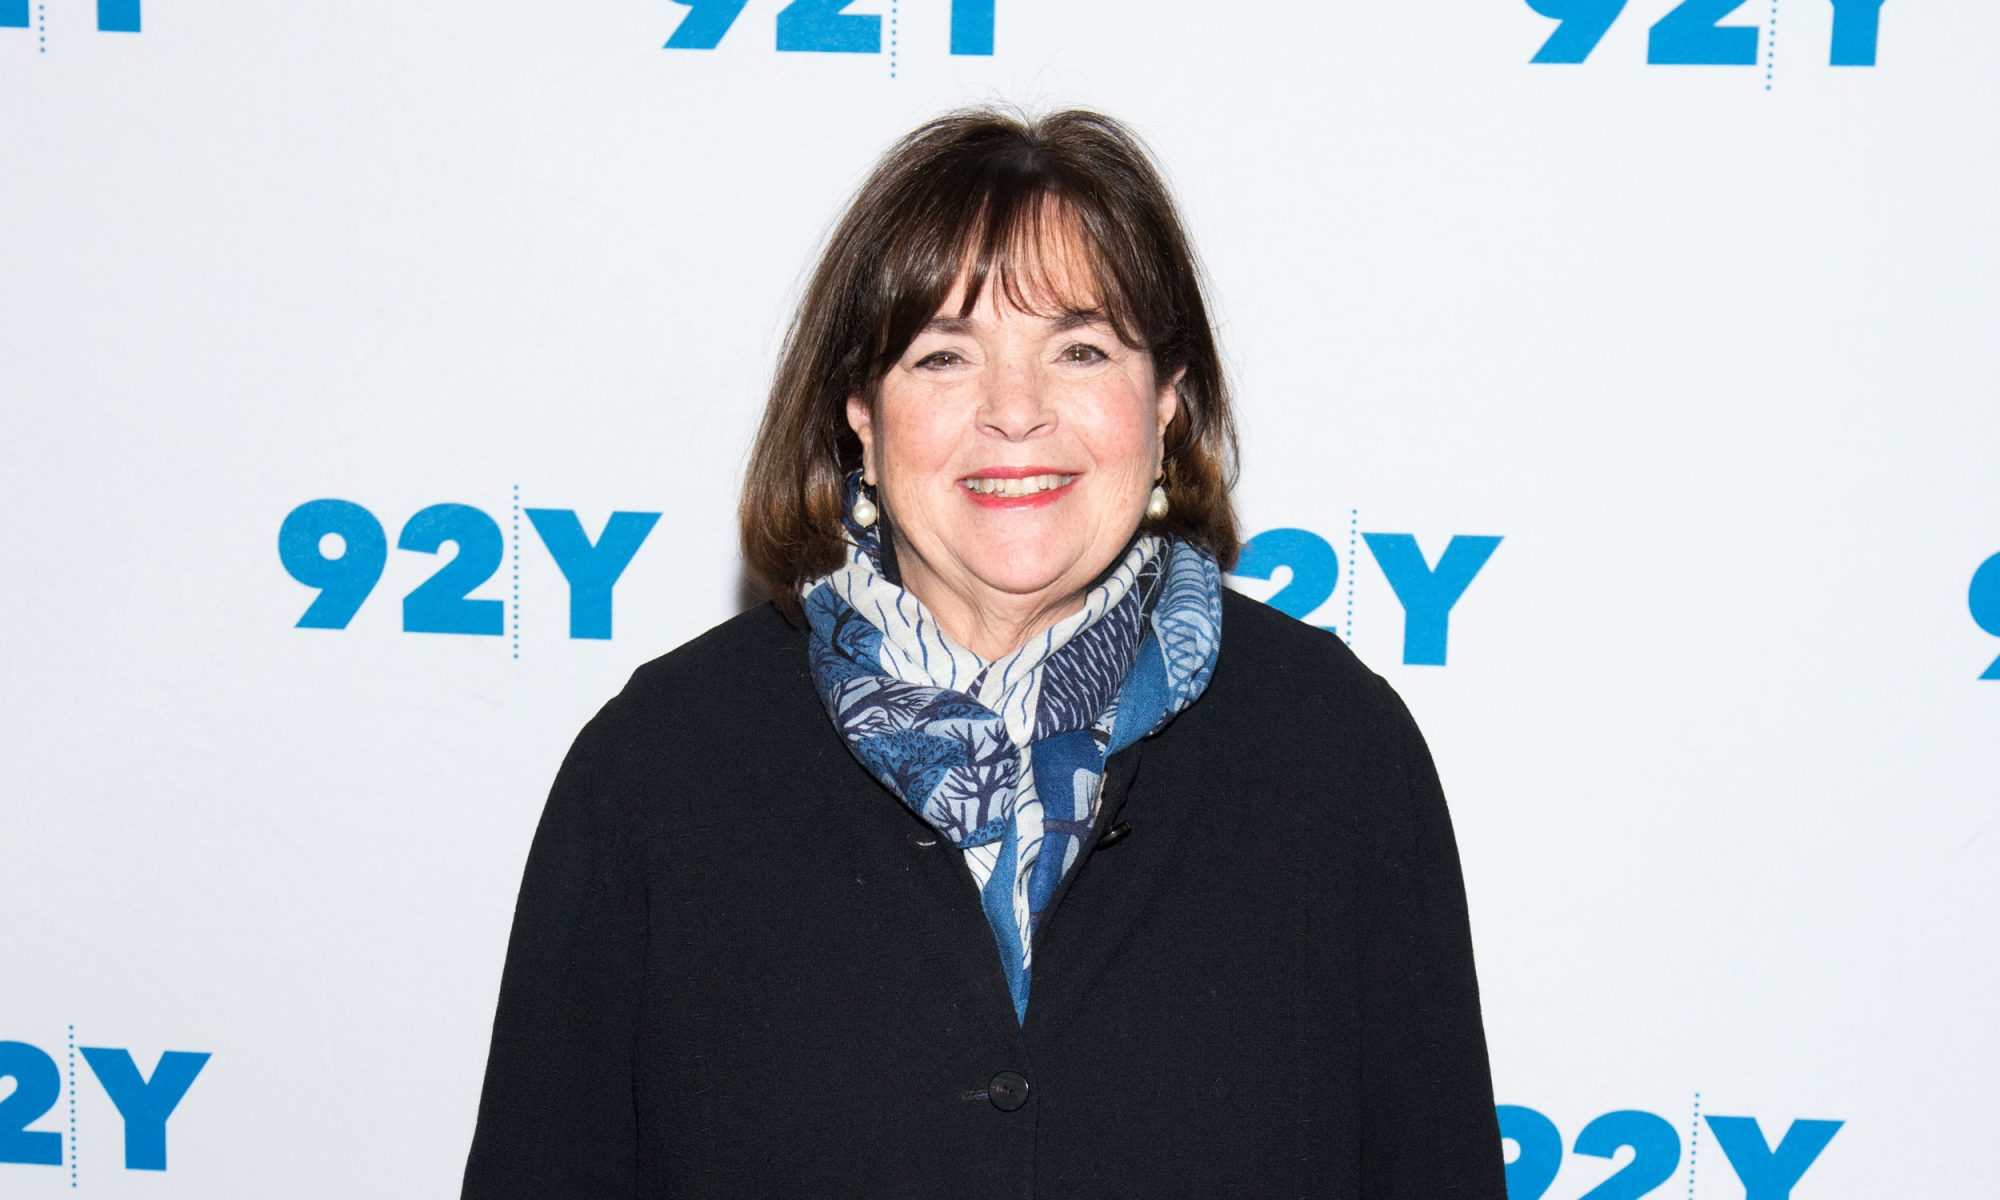 EC: Ina Garten Eats Salted Oatmeal Every Day for Breakfast